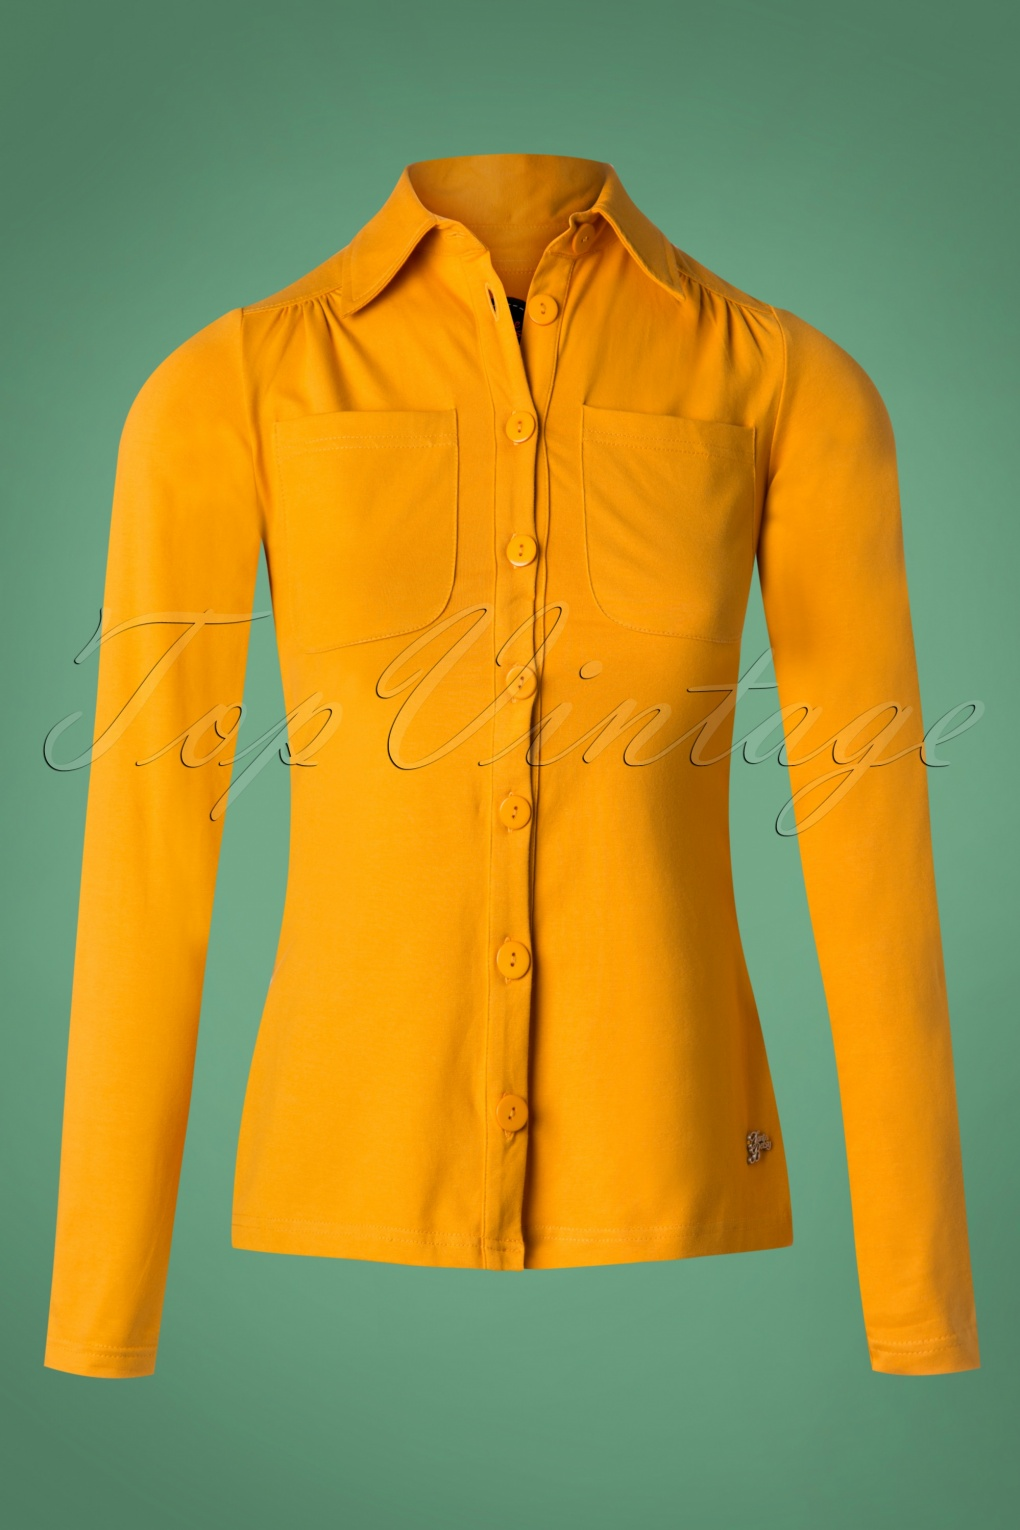 60s Shirts, T-shirt, Blouses | 70s Shirts, Tops, Vests 60s Betsy Blouse in Gold Yellow £46.85 AT vintagedancer.com